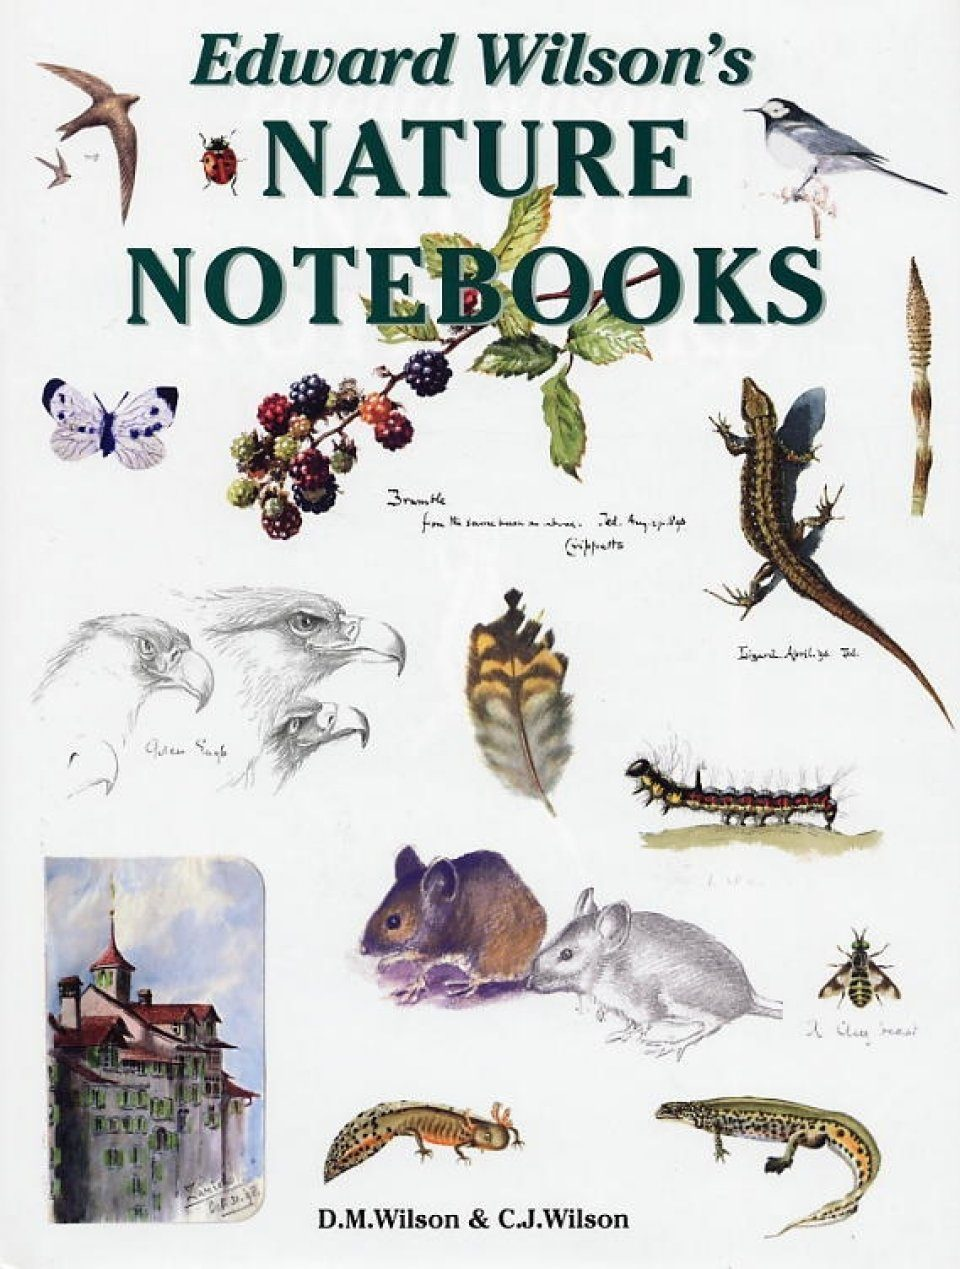 Edward Wilson's Nature Notebooks: Standard Edition